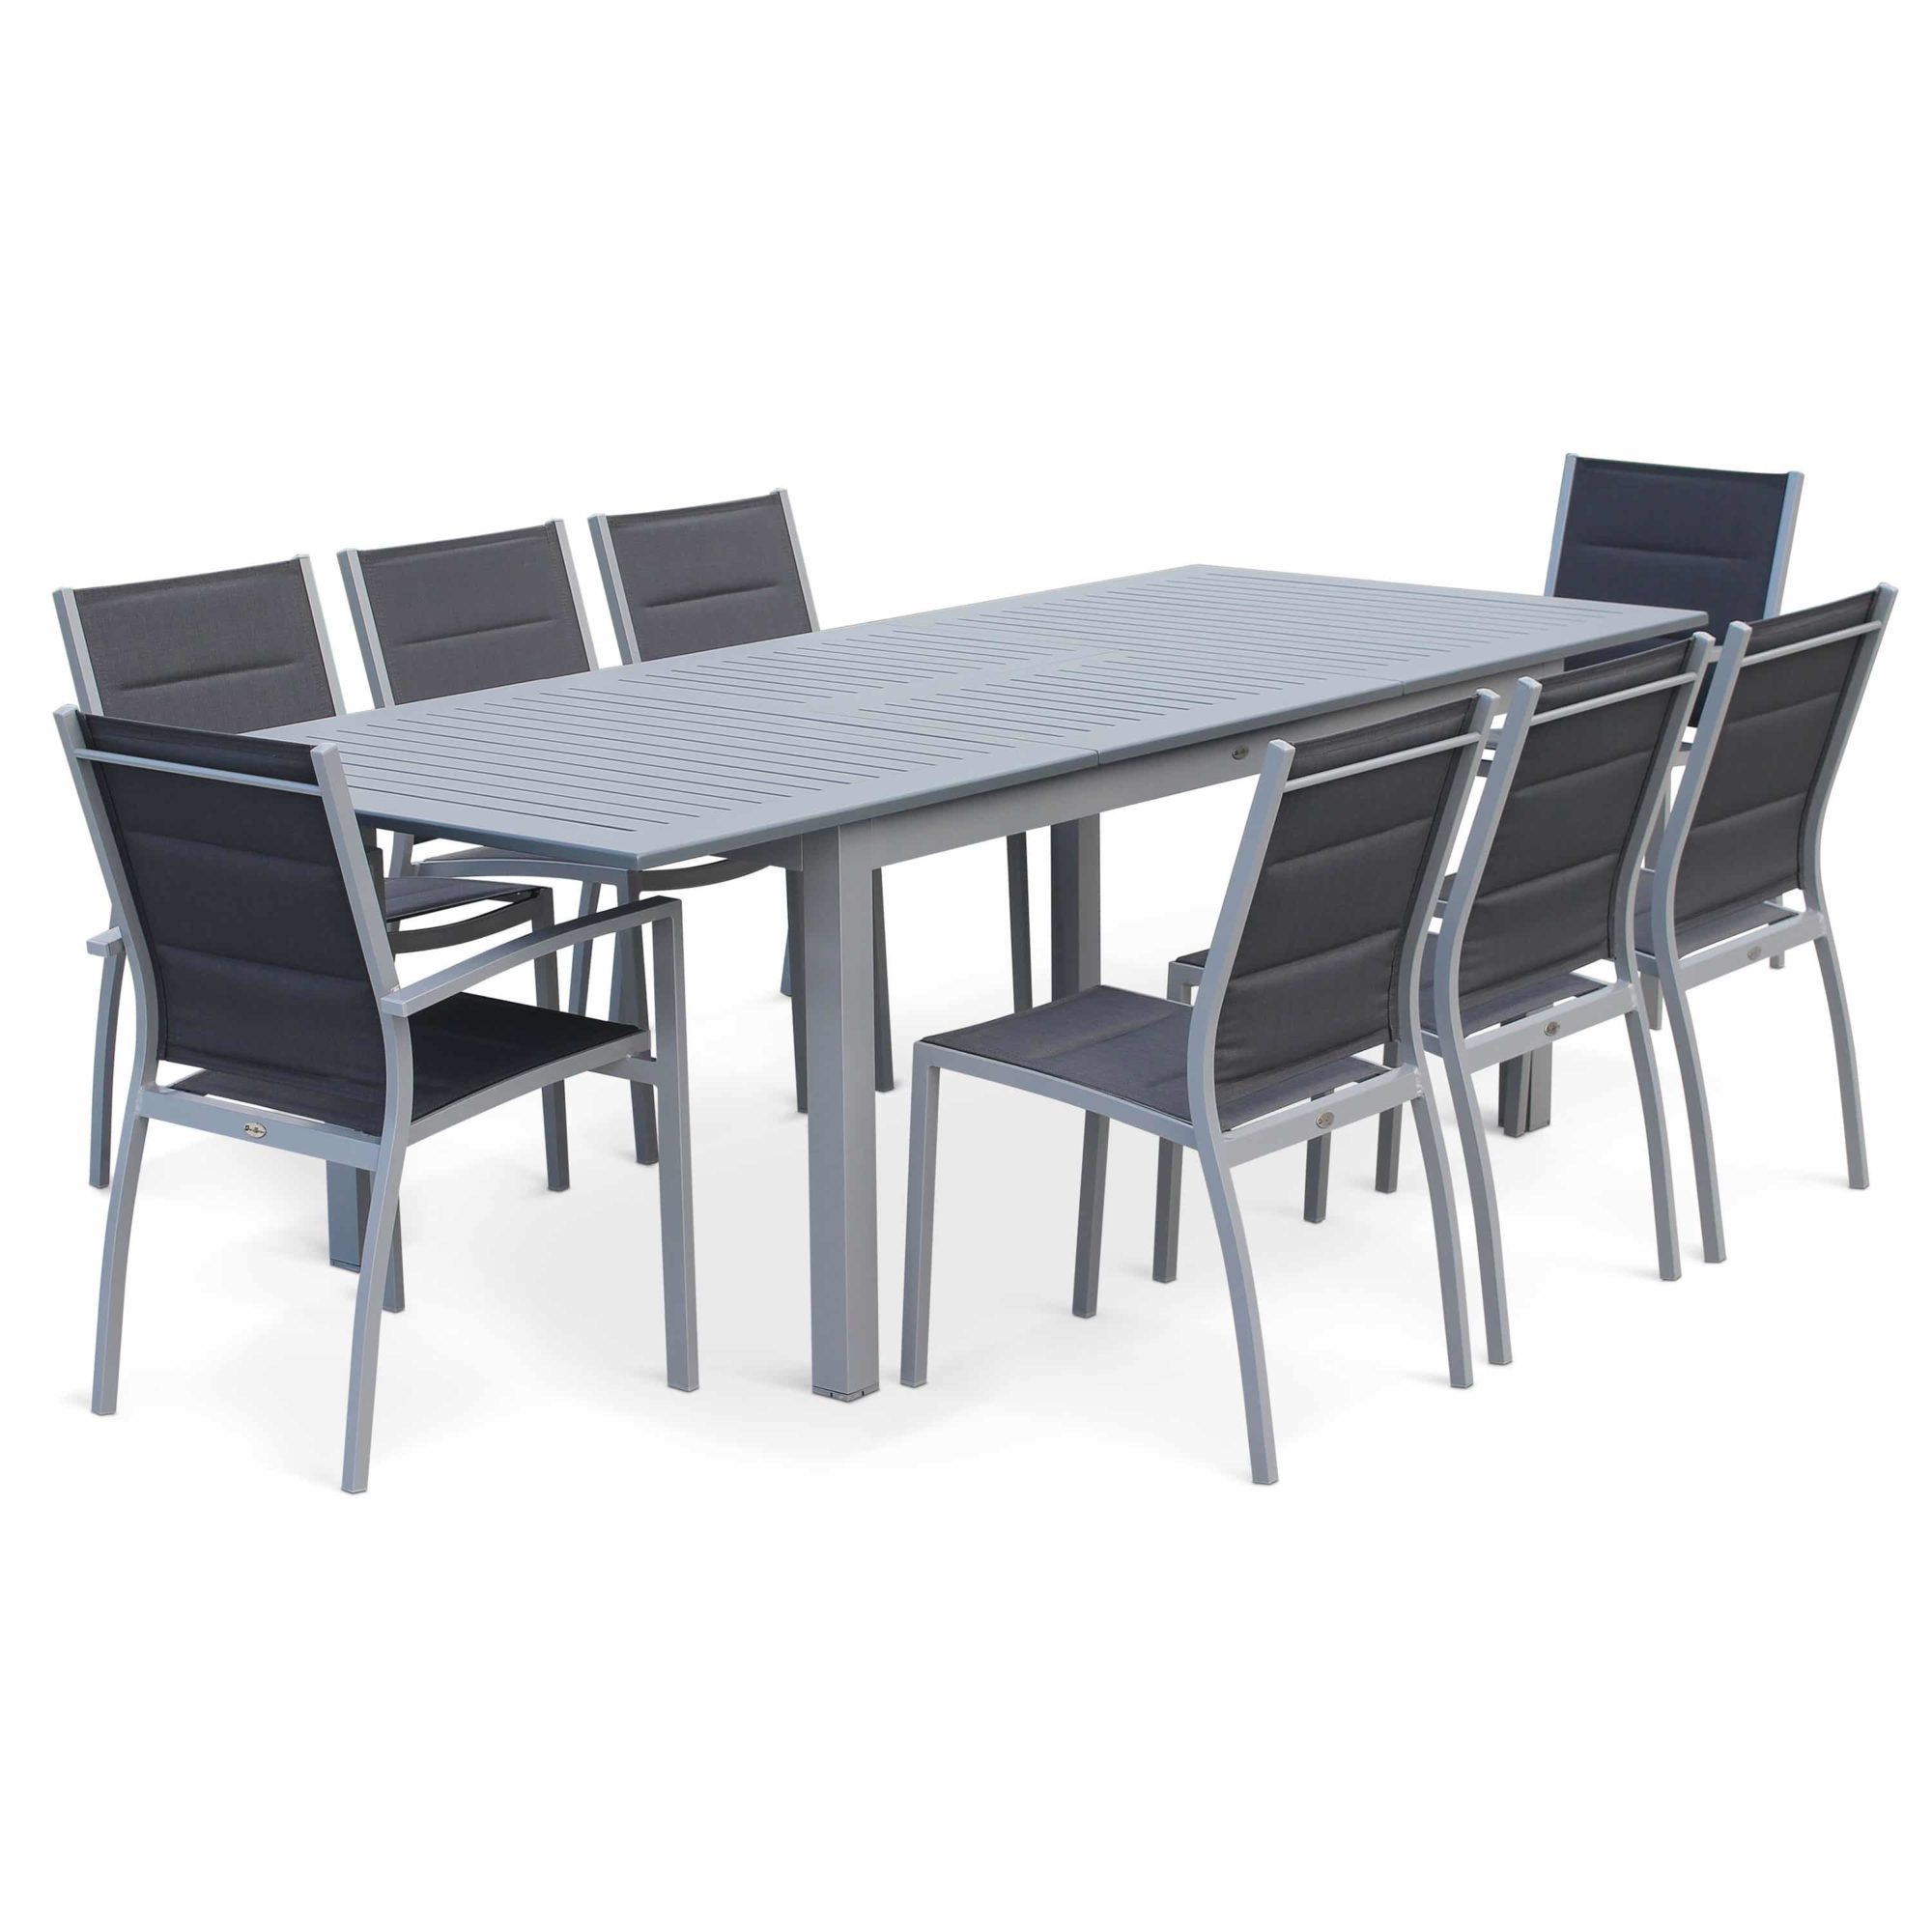 Outdoor Dining Set Alice's Garden 8-10 Seater 175/245cm Extending Dining Set Grey/Grey